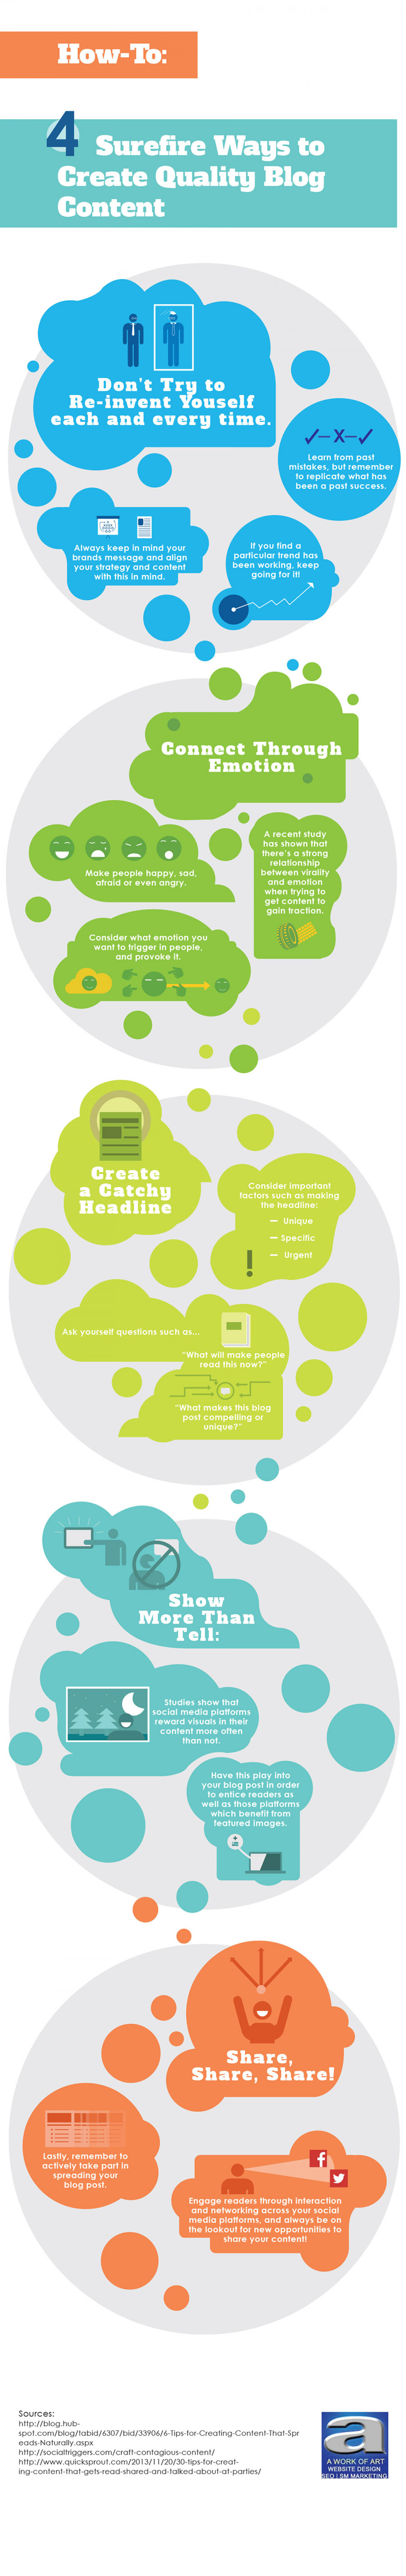 4 Surefire Ways to Create Quality Blog Content Infographic